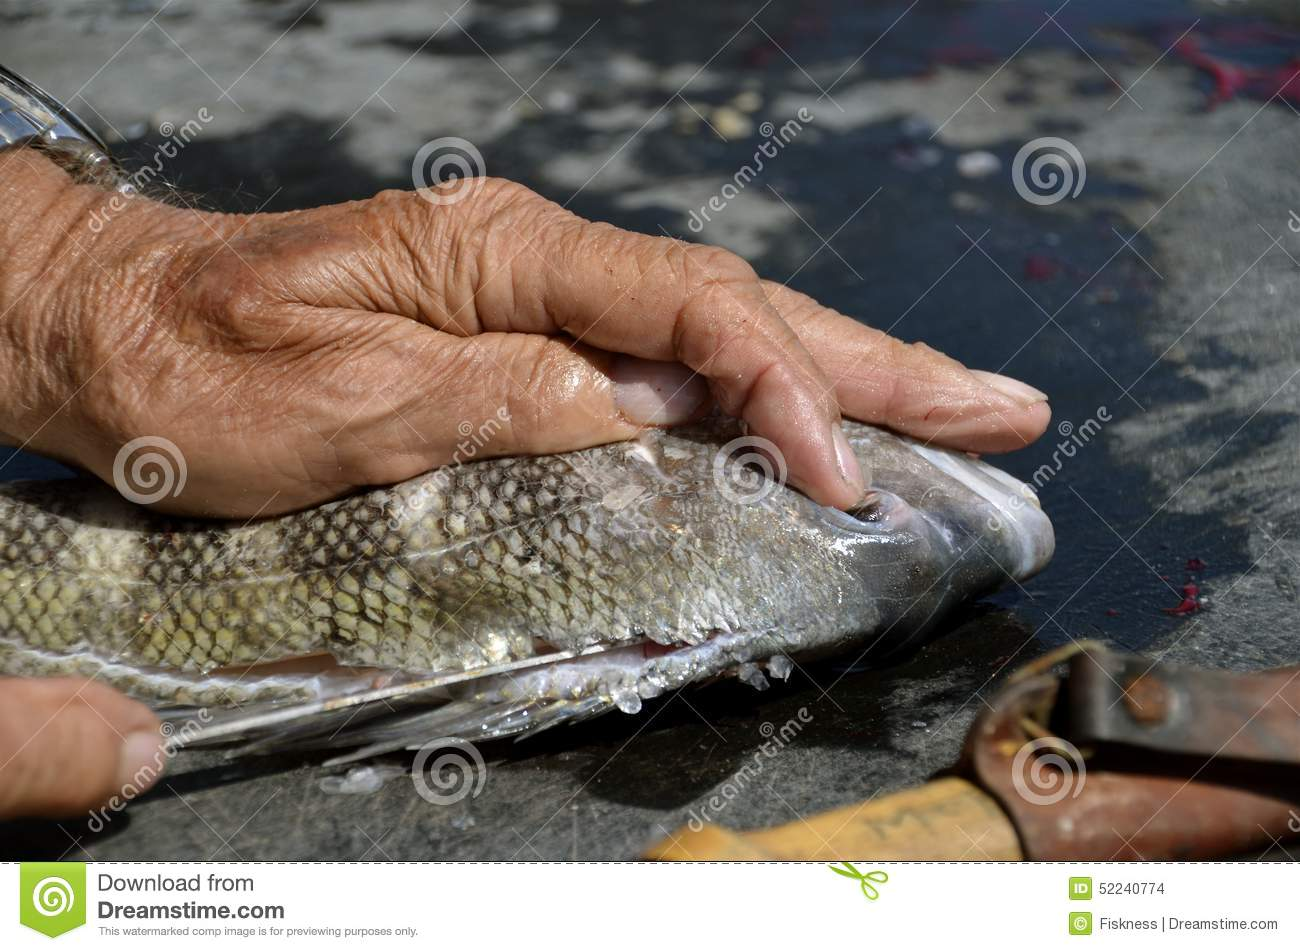 Filleting a fish